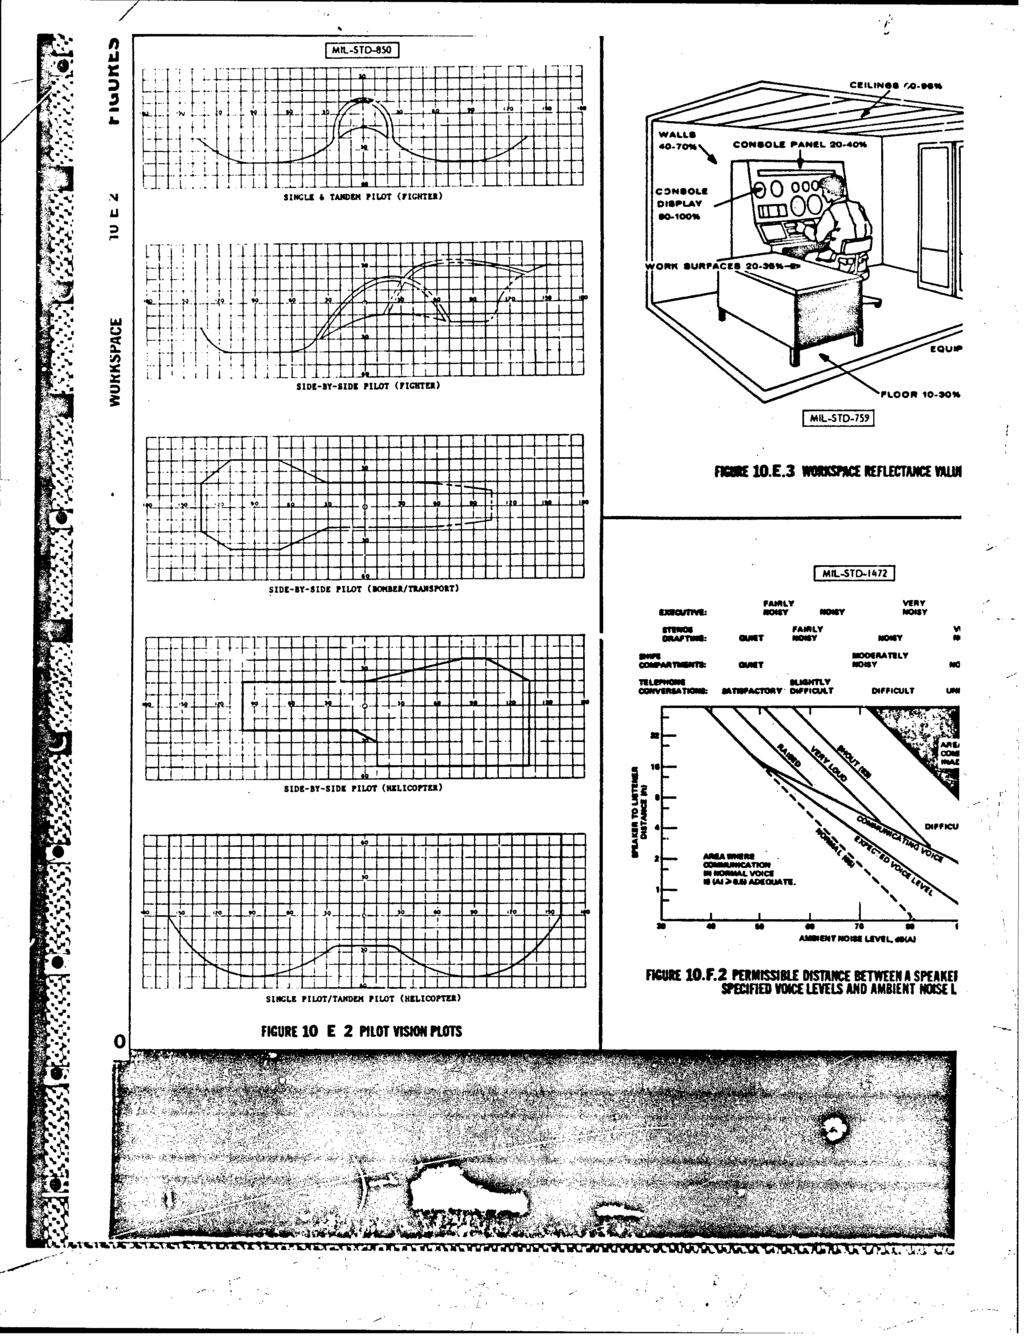 Idrst P70 0 Api En Itiuin Human Factors Eng Reproduced From 1986 Ford Tempo 2 3 Hse Cfi Engine Diagram Best Available Copyfrpbi Eesdsrbto Test Operations Procedure Ad I Pdf